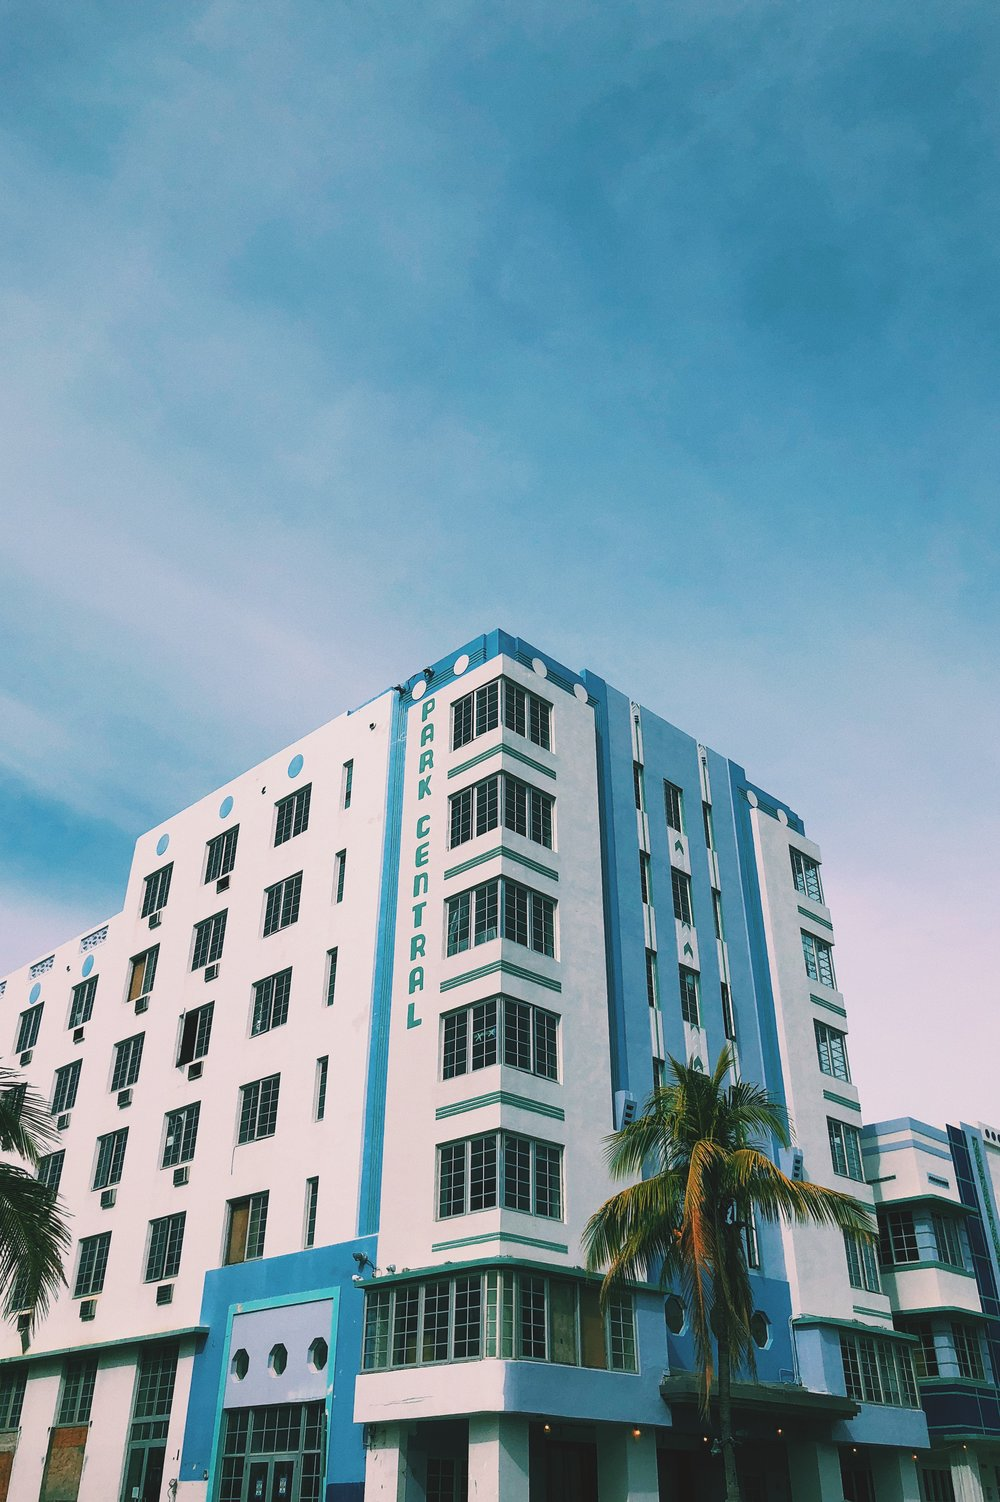 Miami - Building photography